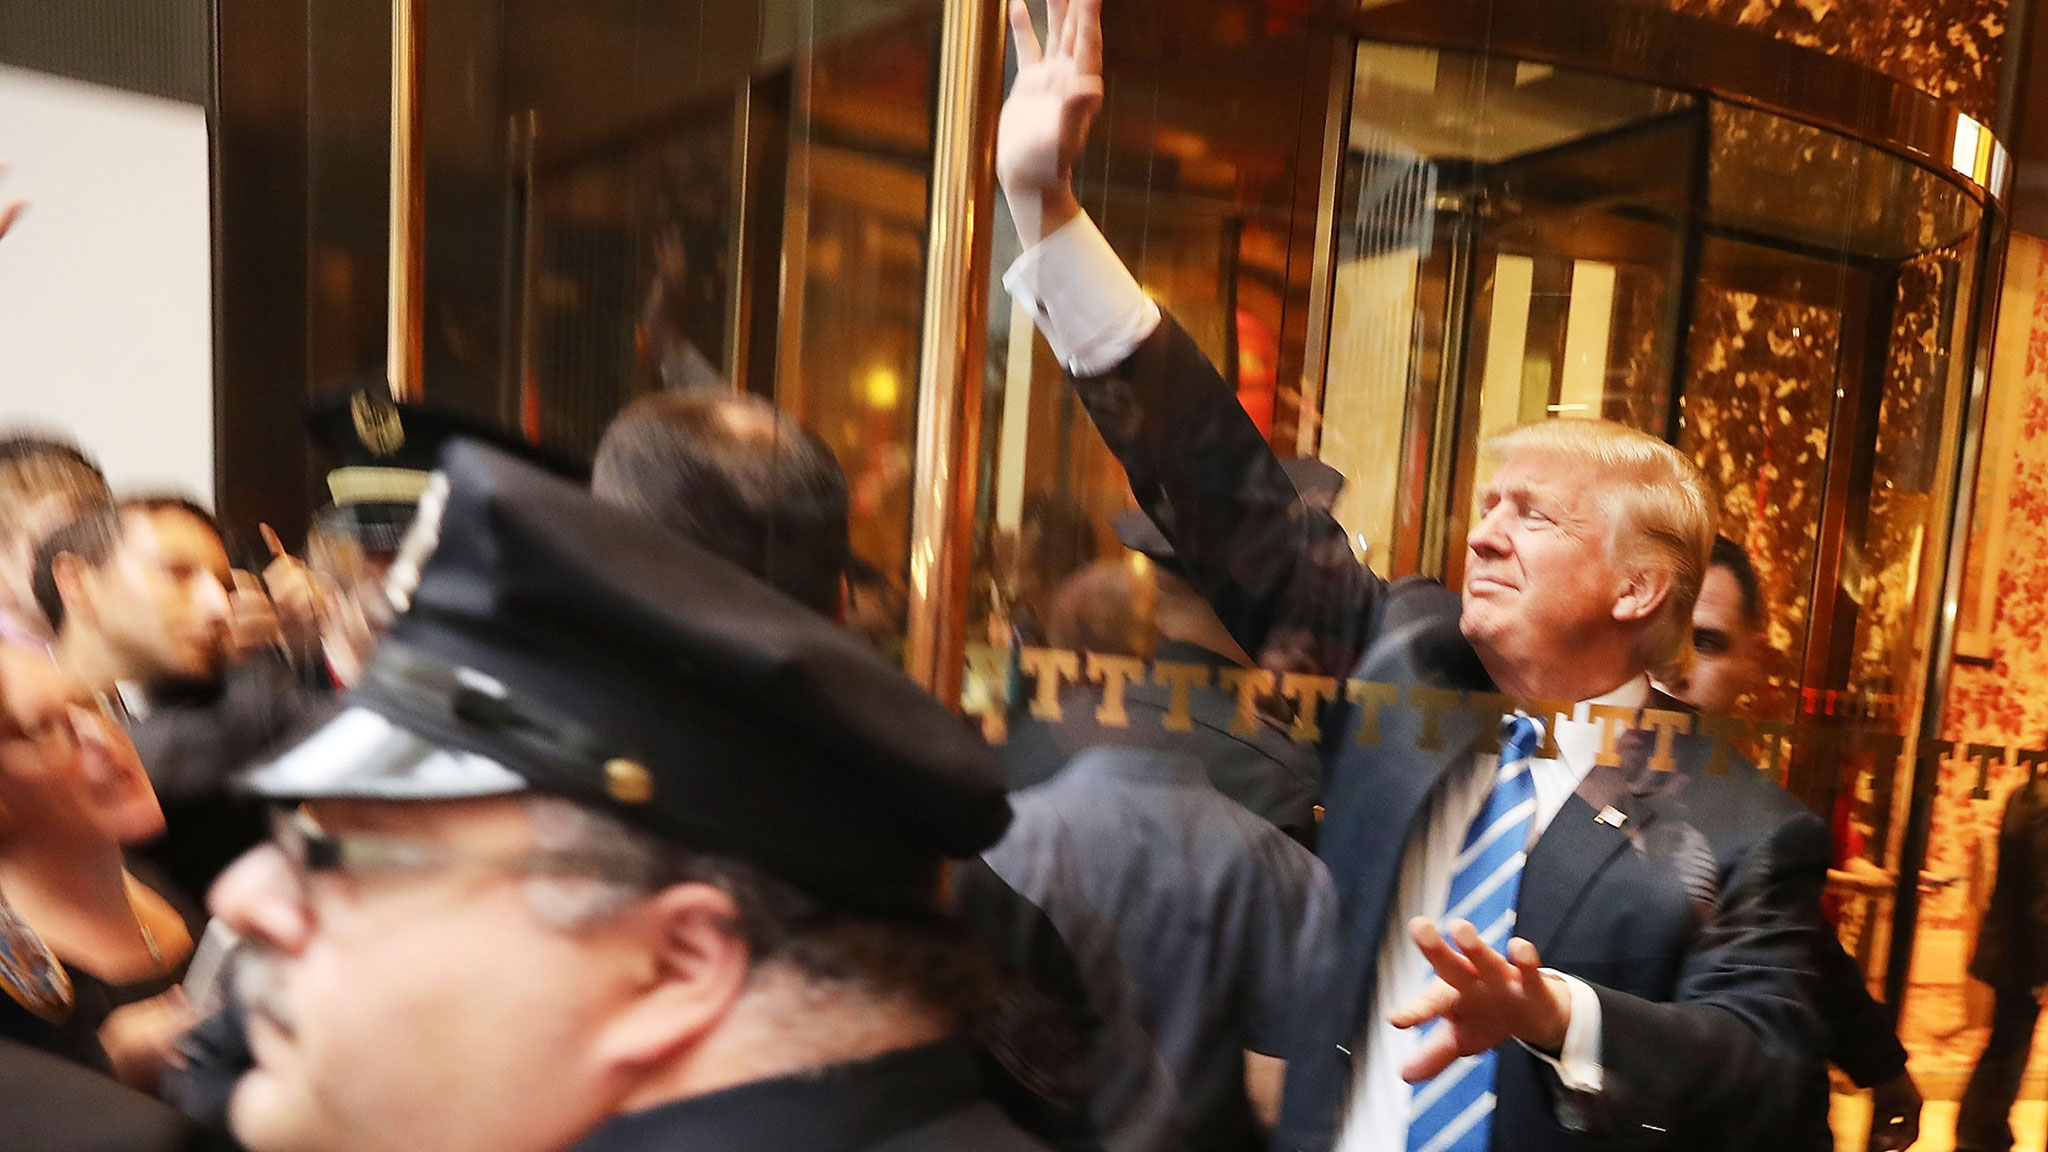 Donald Trump greets supporters outside of Trump Towers in Manhattan, New York City on Oct 8 2016